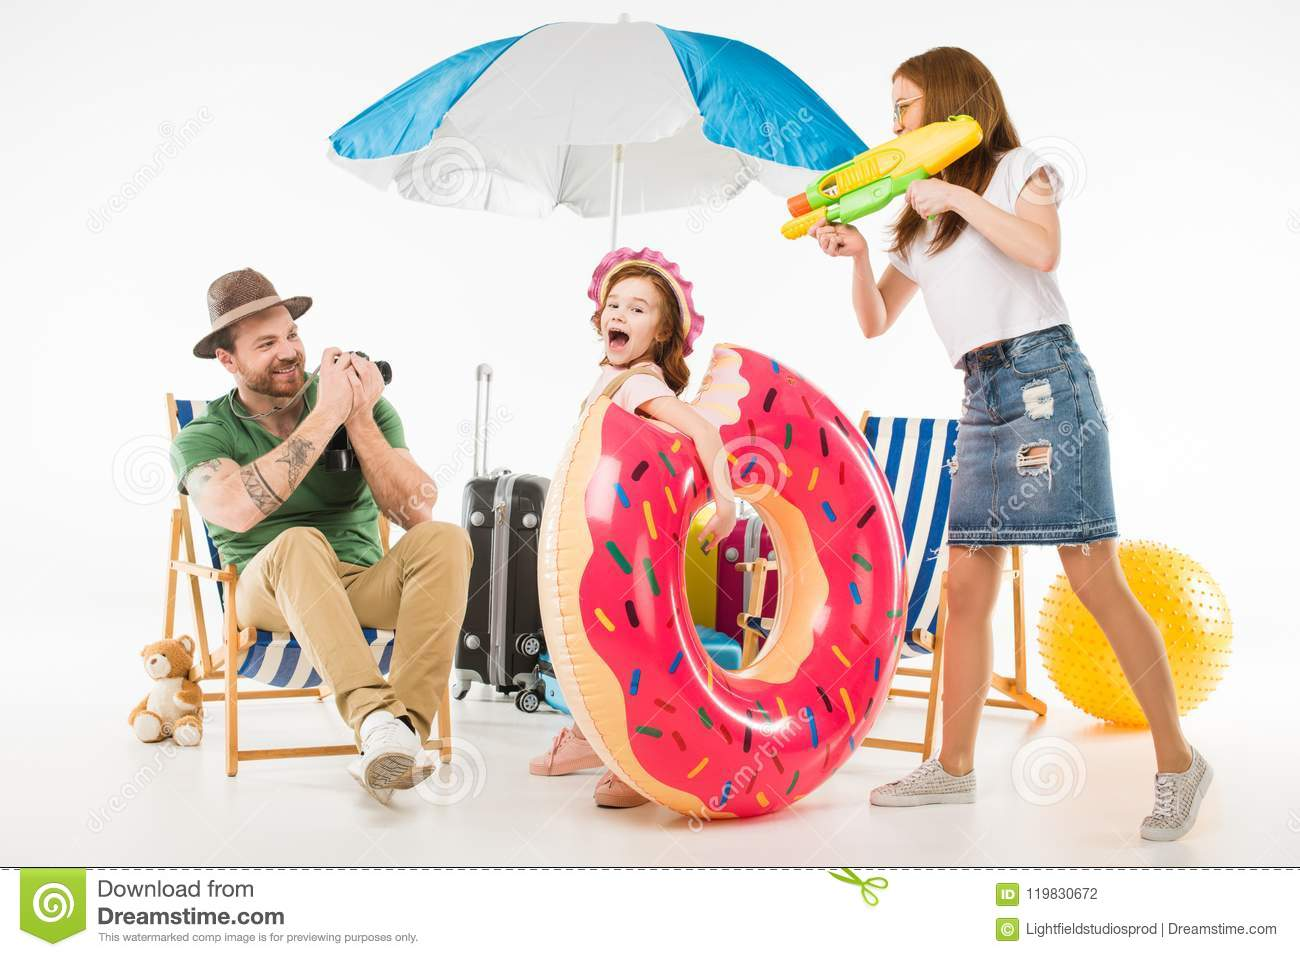 Father taking shot on camera while mother aiming water gun on daughter with flotation ring